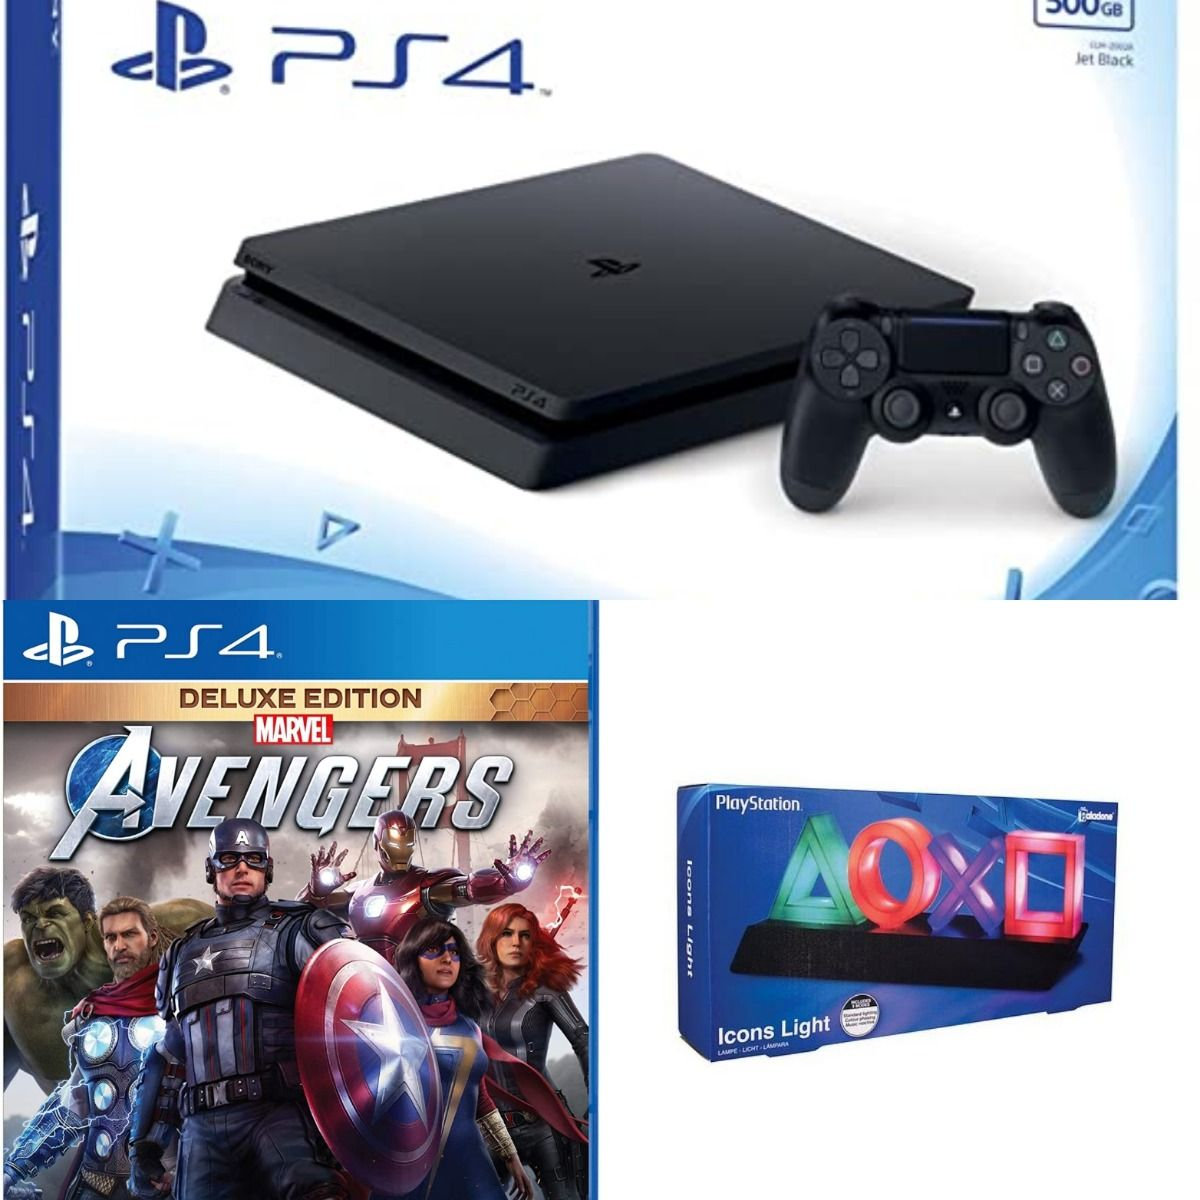 Sony PS4 Slim 500GB Black + Marvel Avengers - Deluxe Edition + Playstation Icons Light